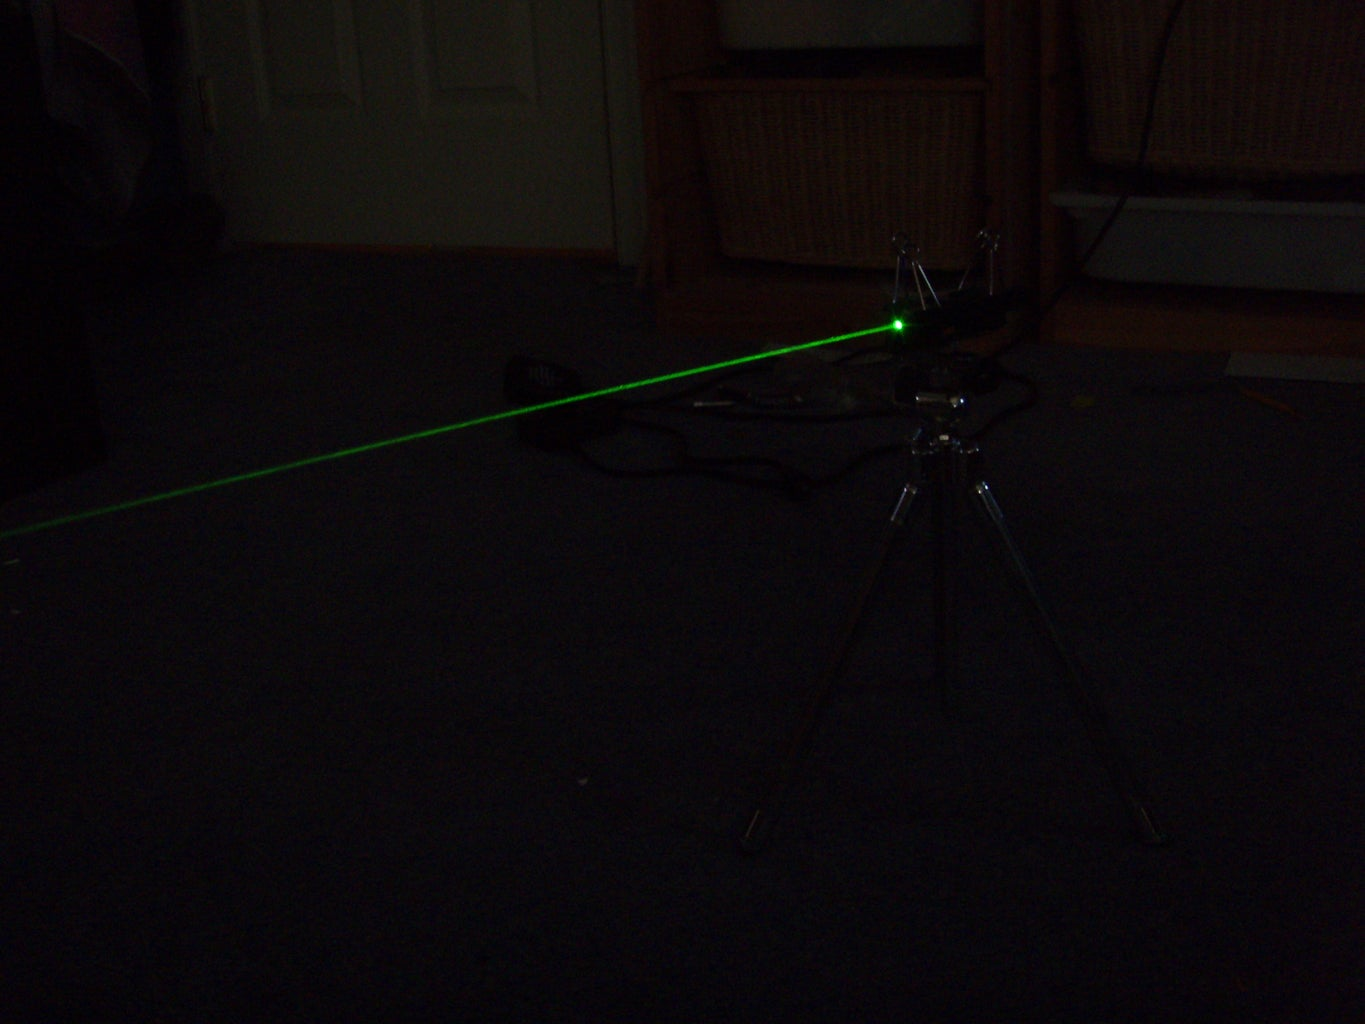 Screw on to Tripod and See How It Fits!